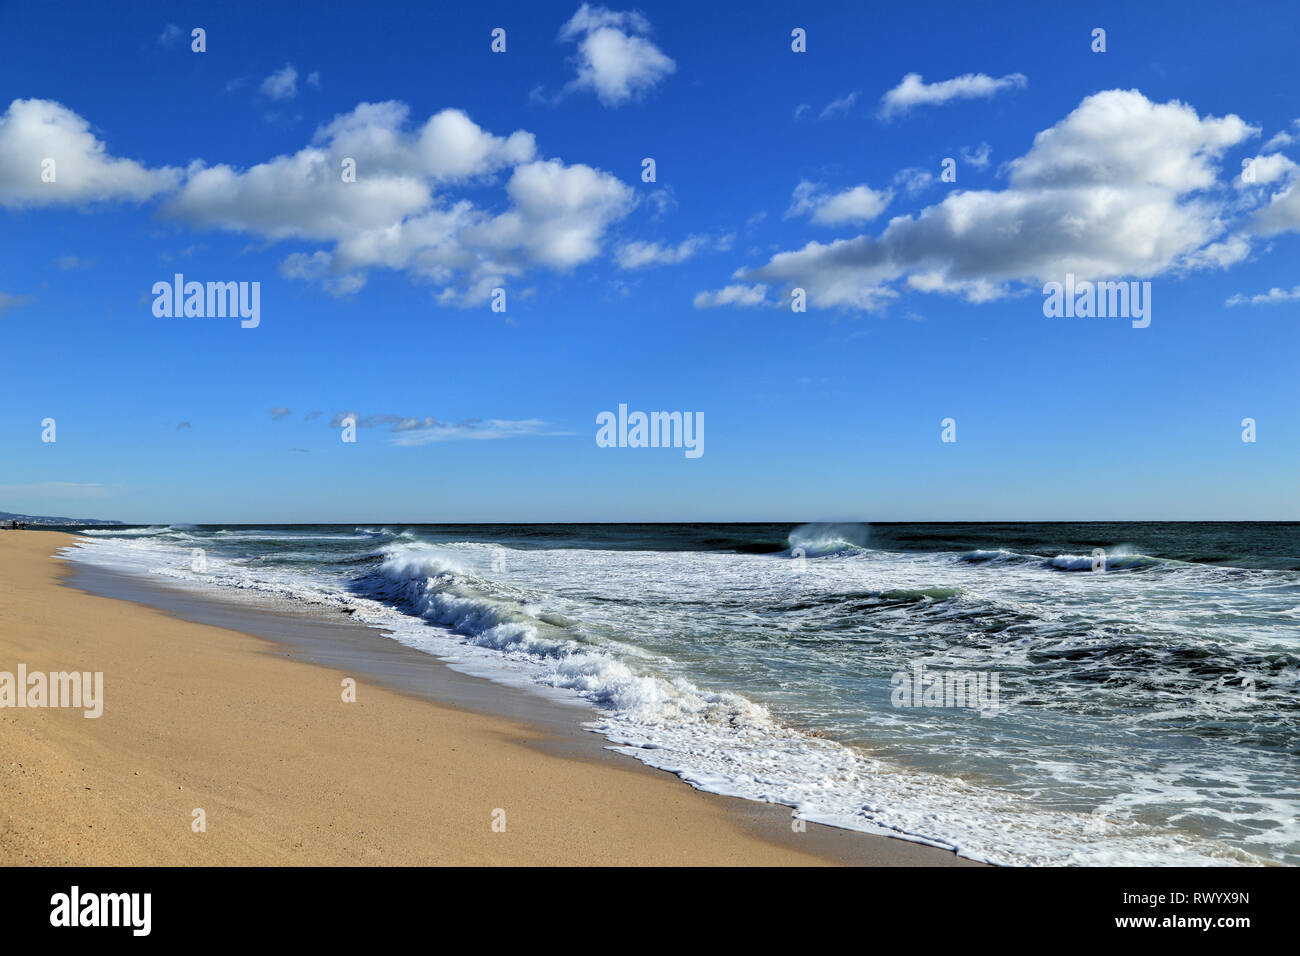 Beach, waves, blue sky and clouds. - Stock Image